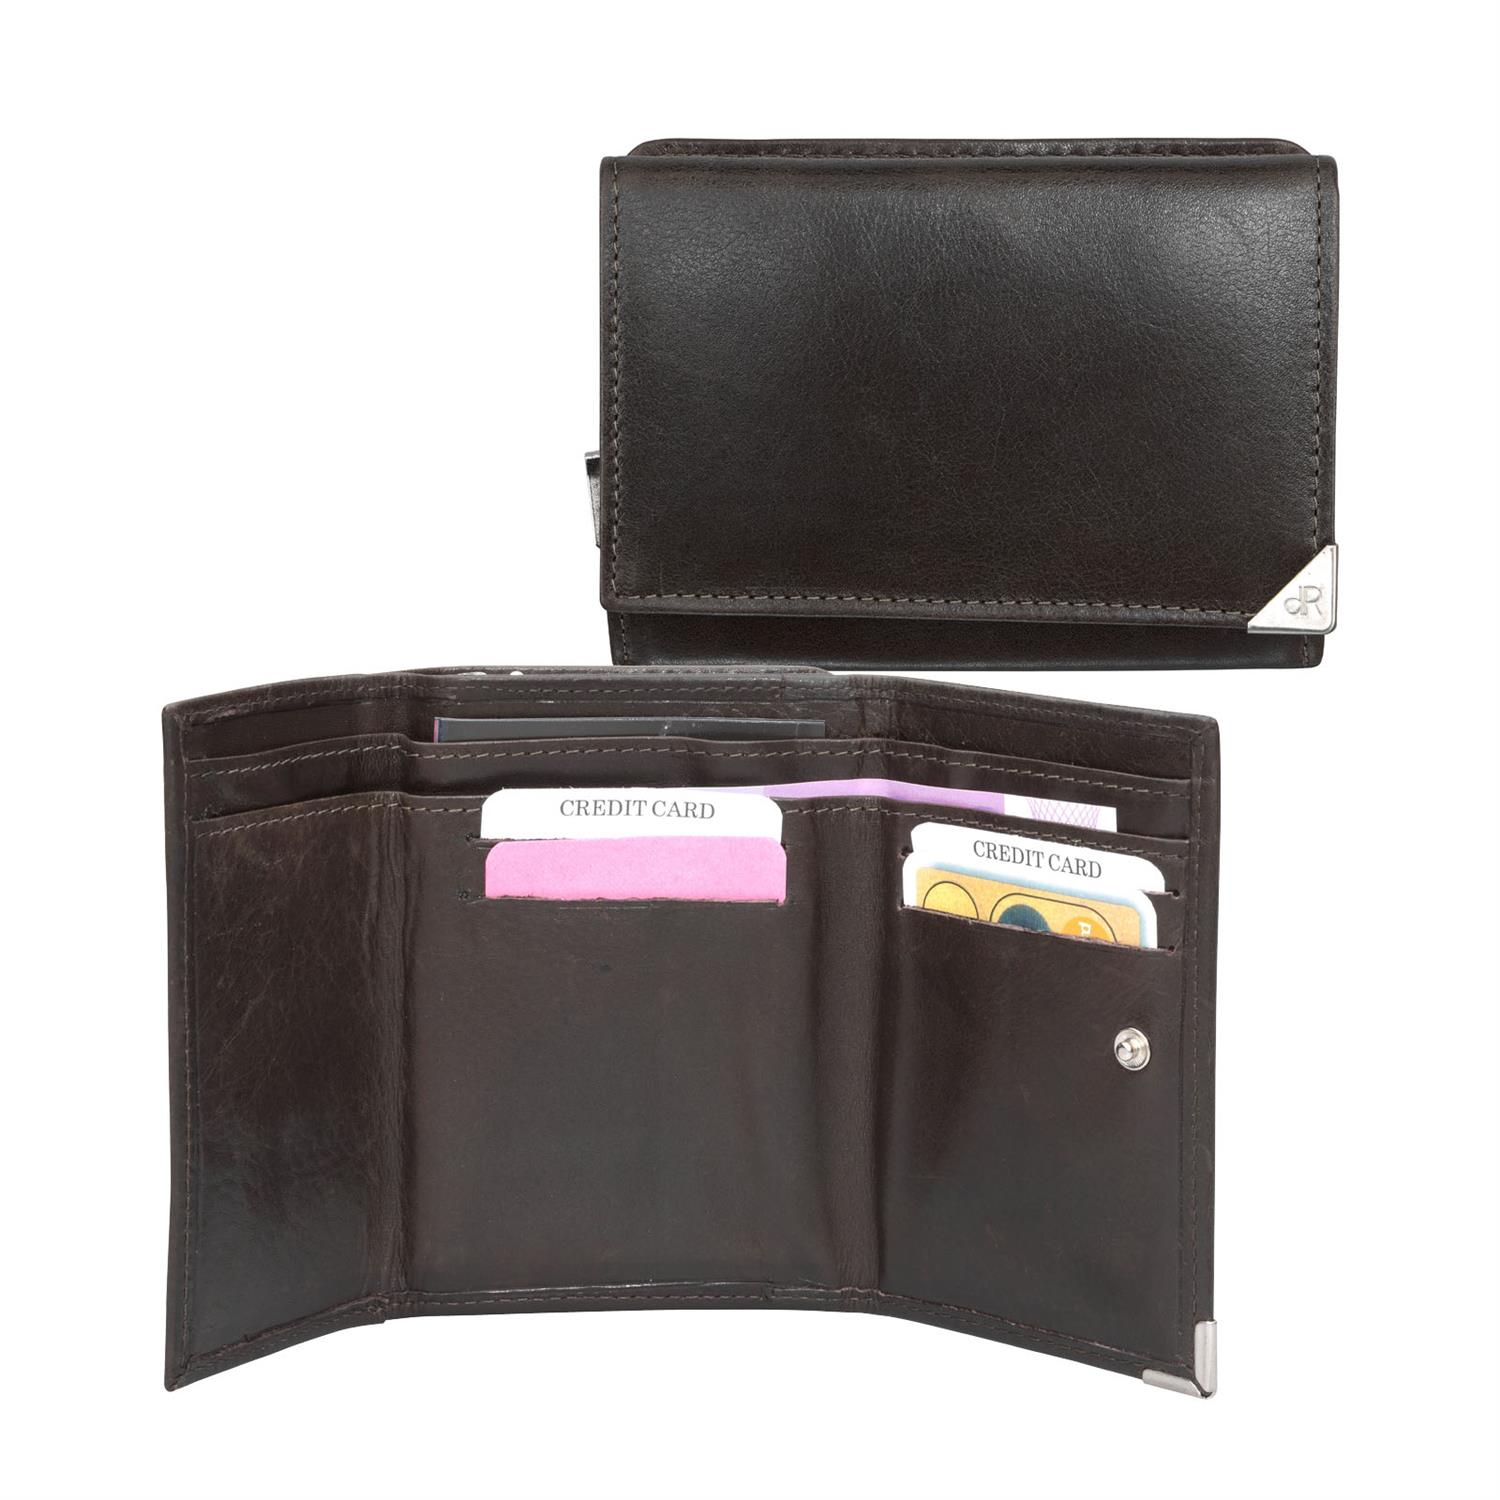 85d51636a4843 dR Amsterdam Herren Portemonnaie - Mens wallet - Leather goods - dR ...